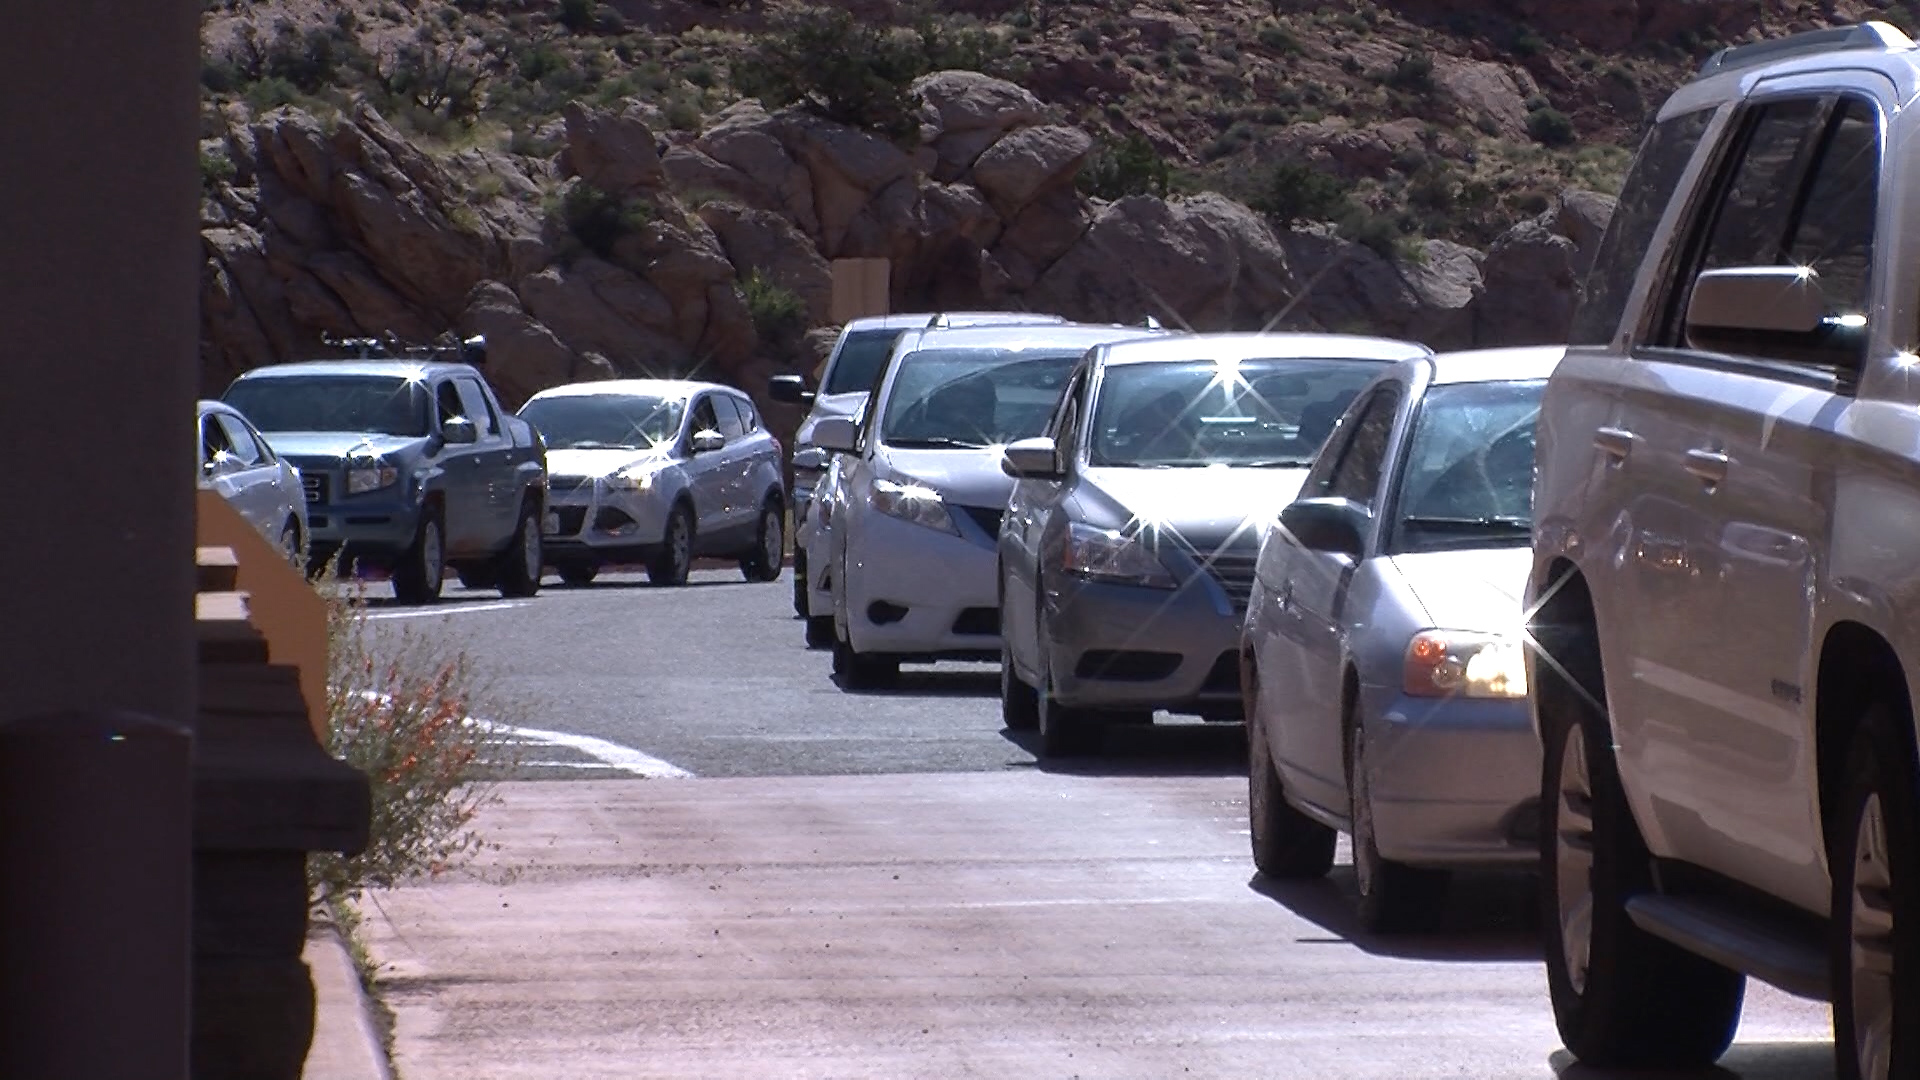 Officials hope to mitigate traffic issues at Utah's national parks over holiday weekend